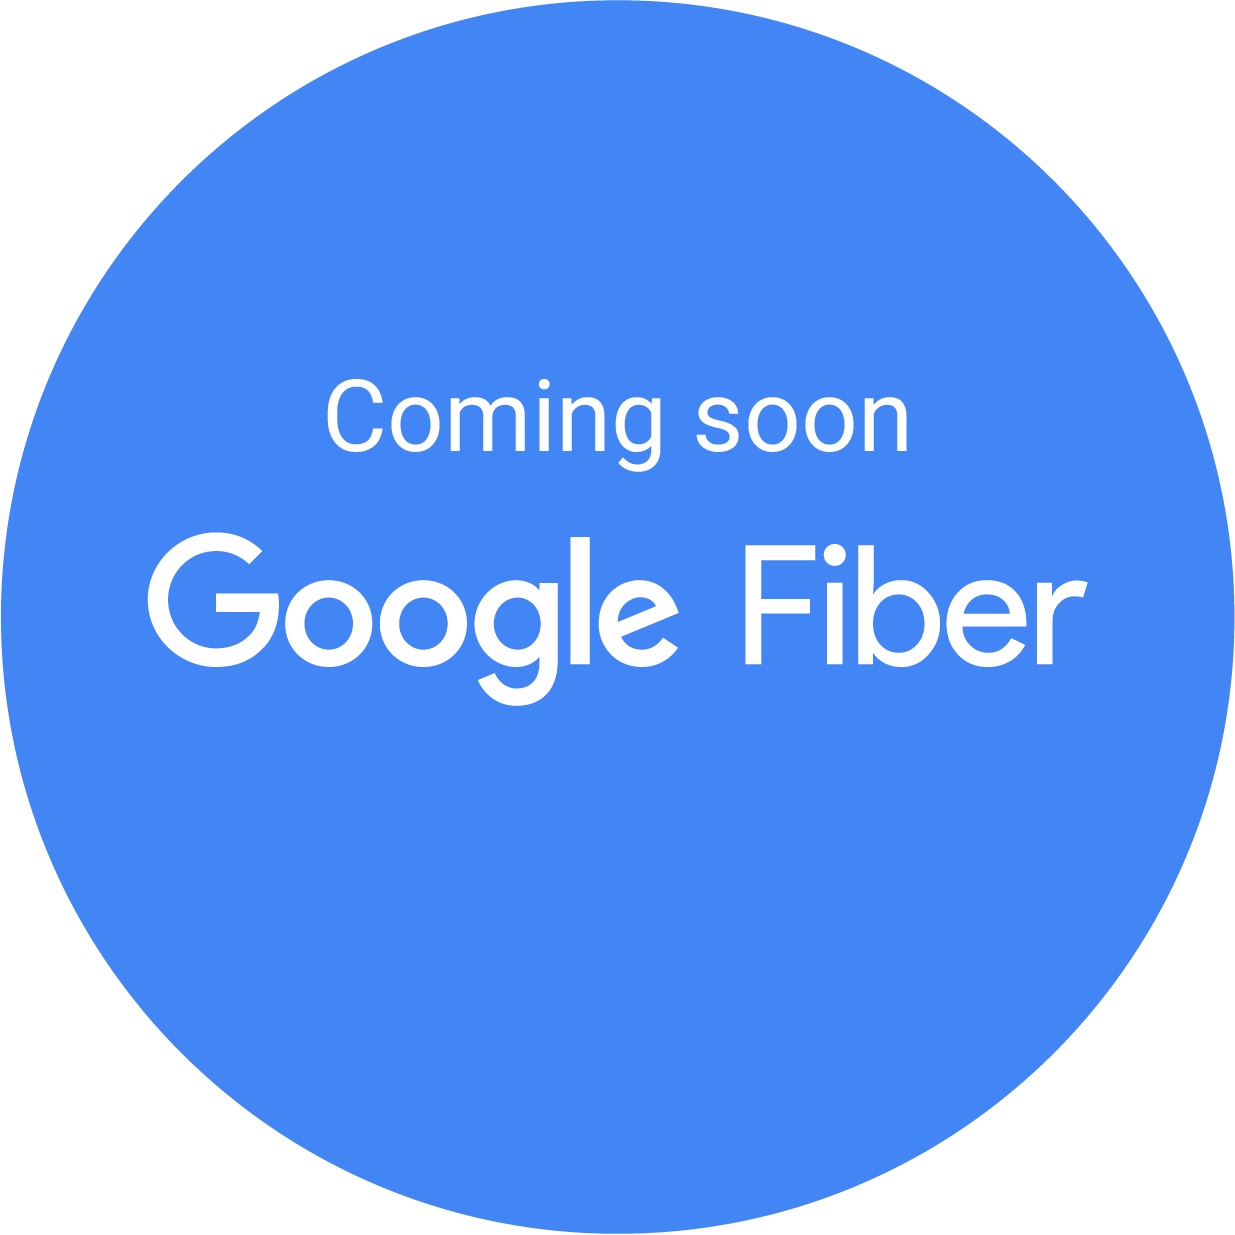 Coming soon: Google Fiber badge